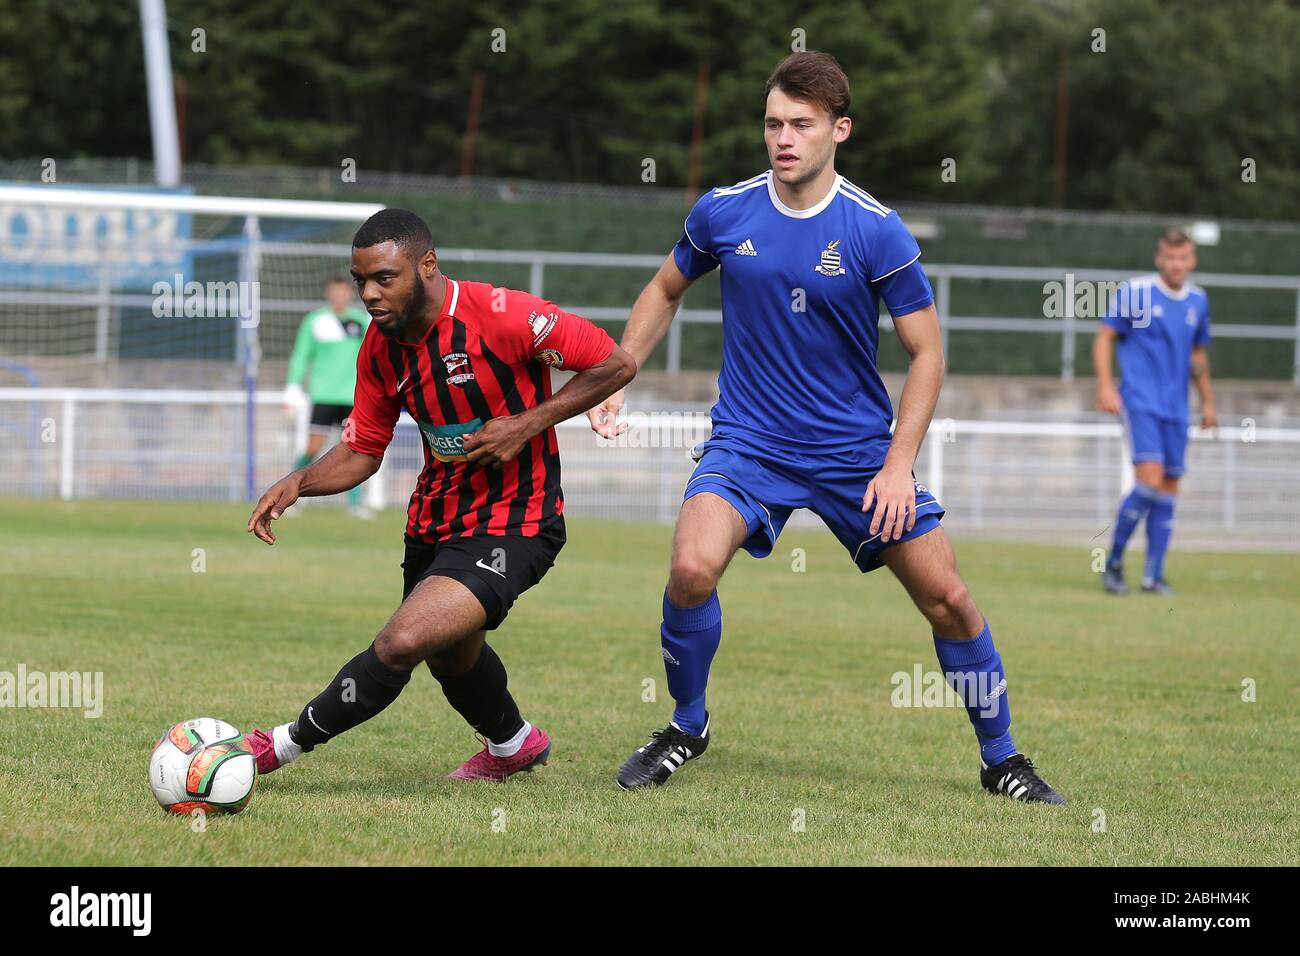 Gary Bowes of Saffron Walden and Sam Dickens of Redbridge during Redbridge vs Saffron Walden Town, Essex Senior League Football at Oakside Stadium on Stock Photo